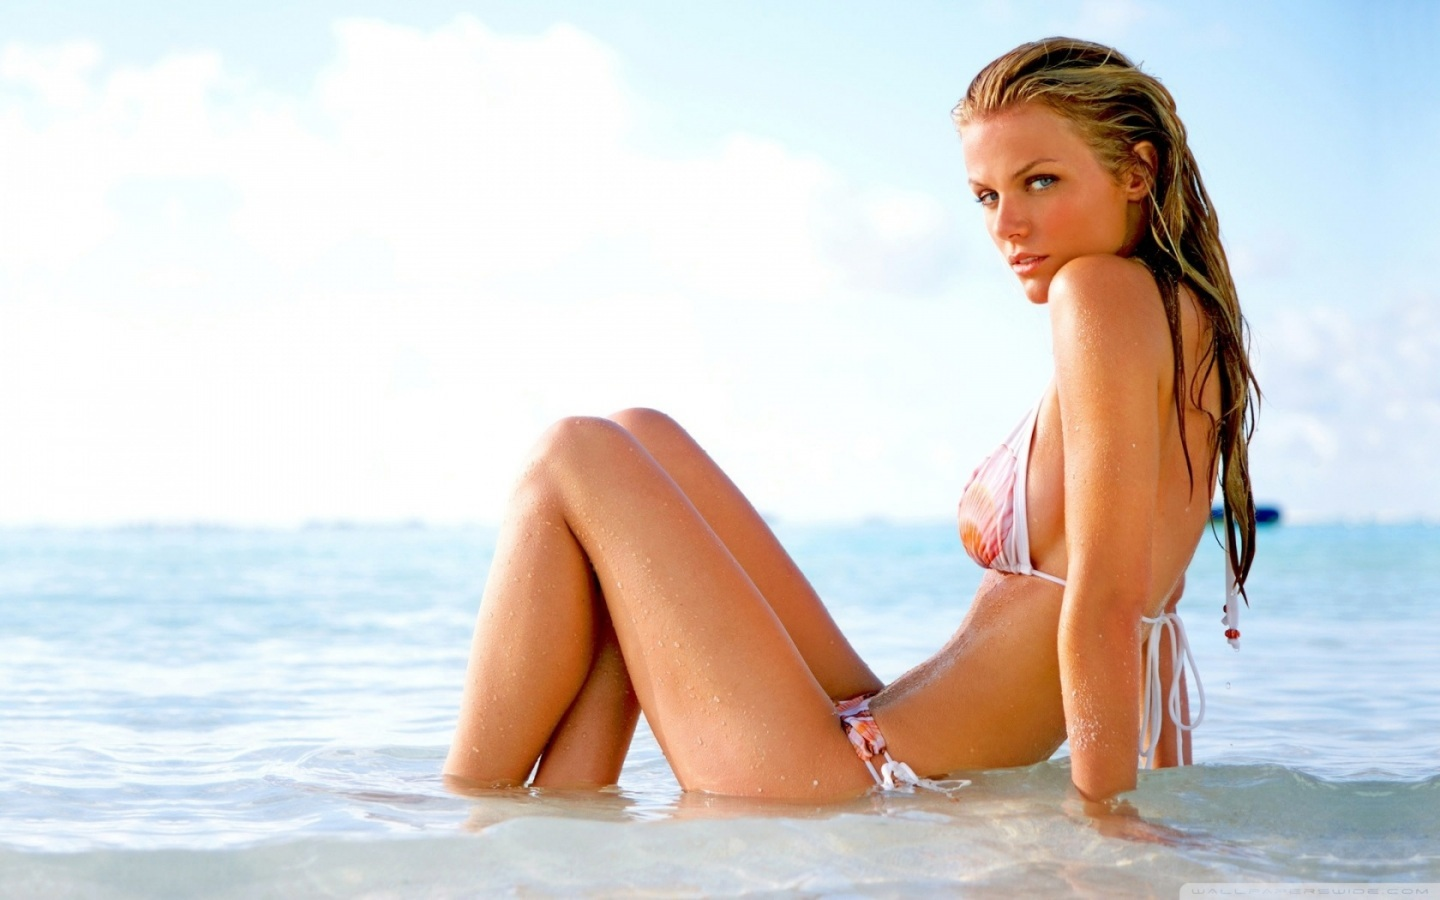 Brooklyn Decker Wallpaper Widescreen Wallpaper Brooklyn Decker